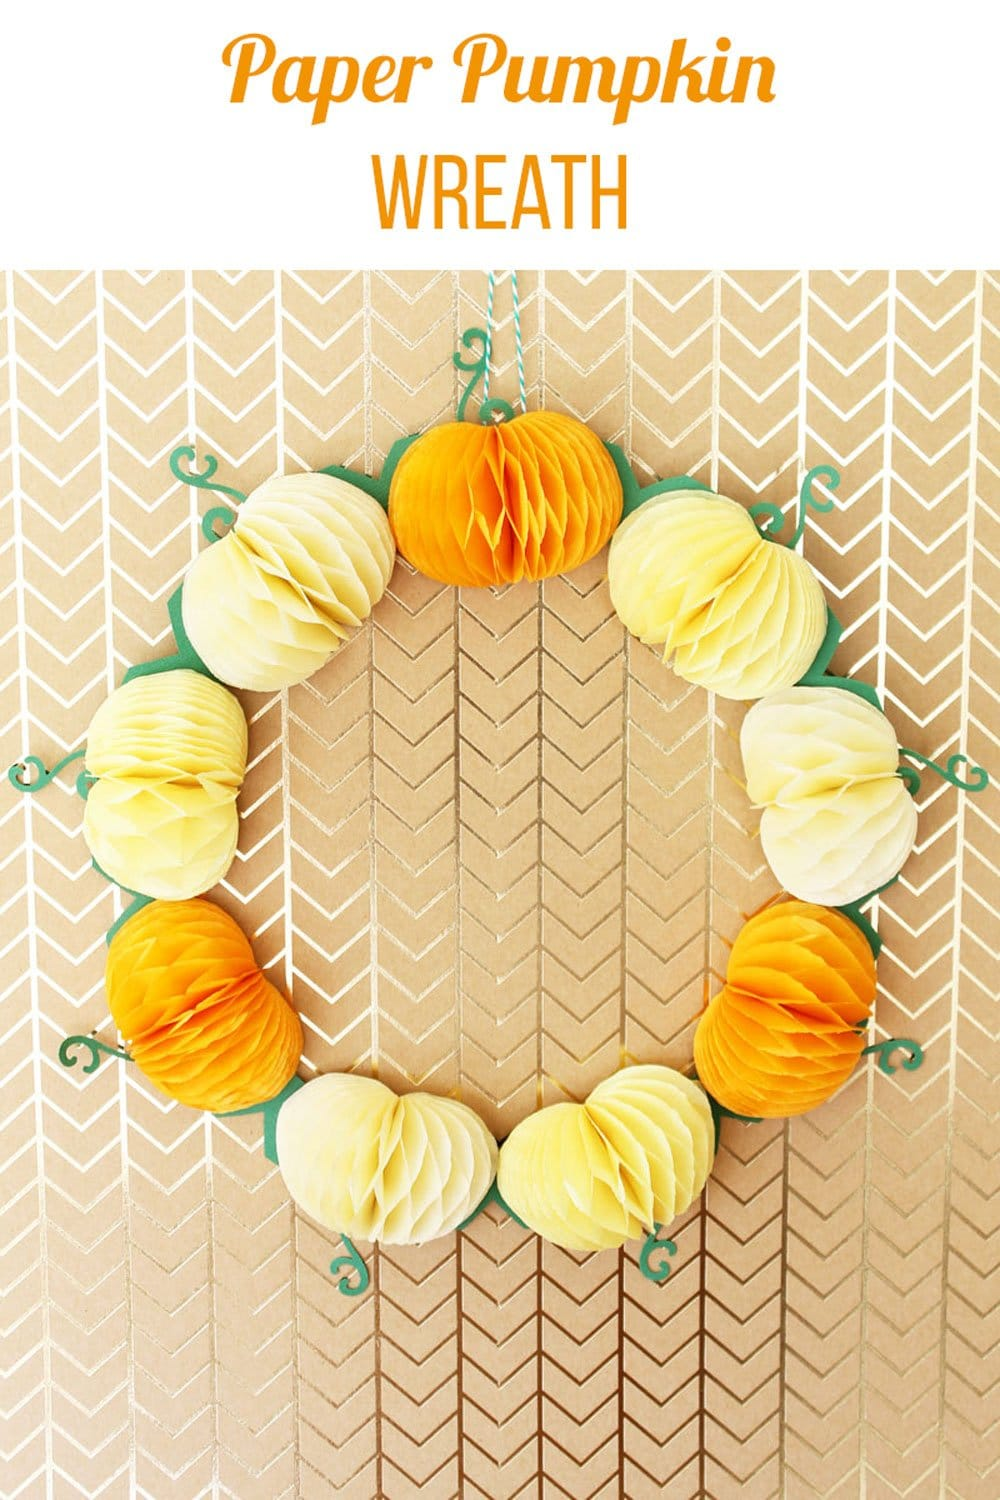 Paper pumpkin wreath made with honeycomb pads